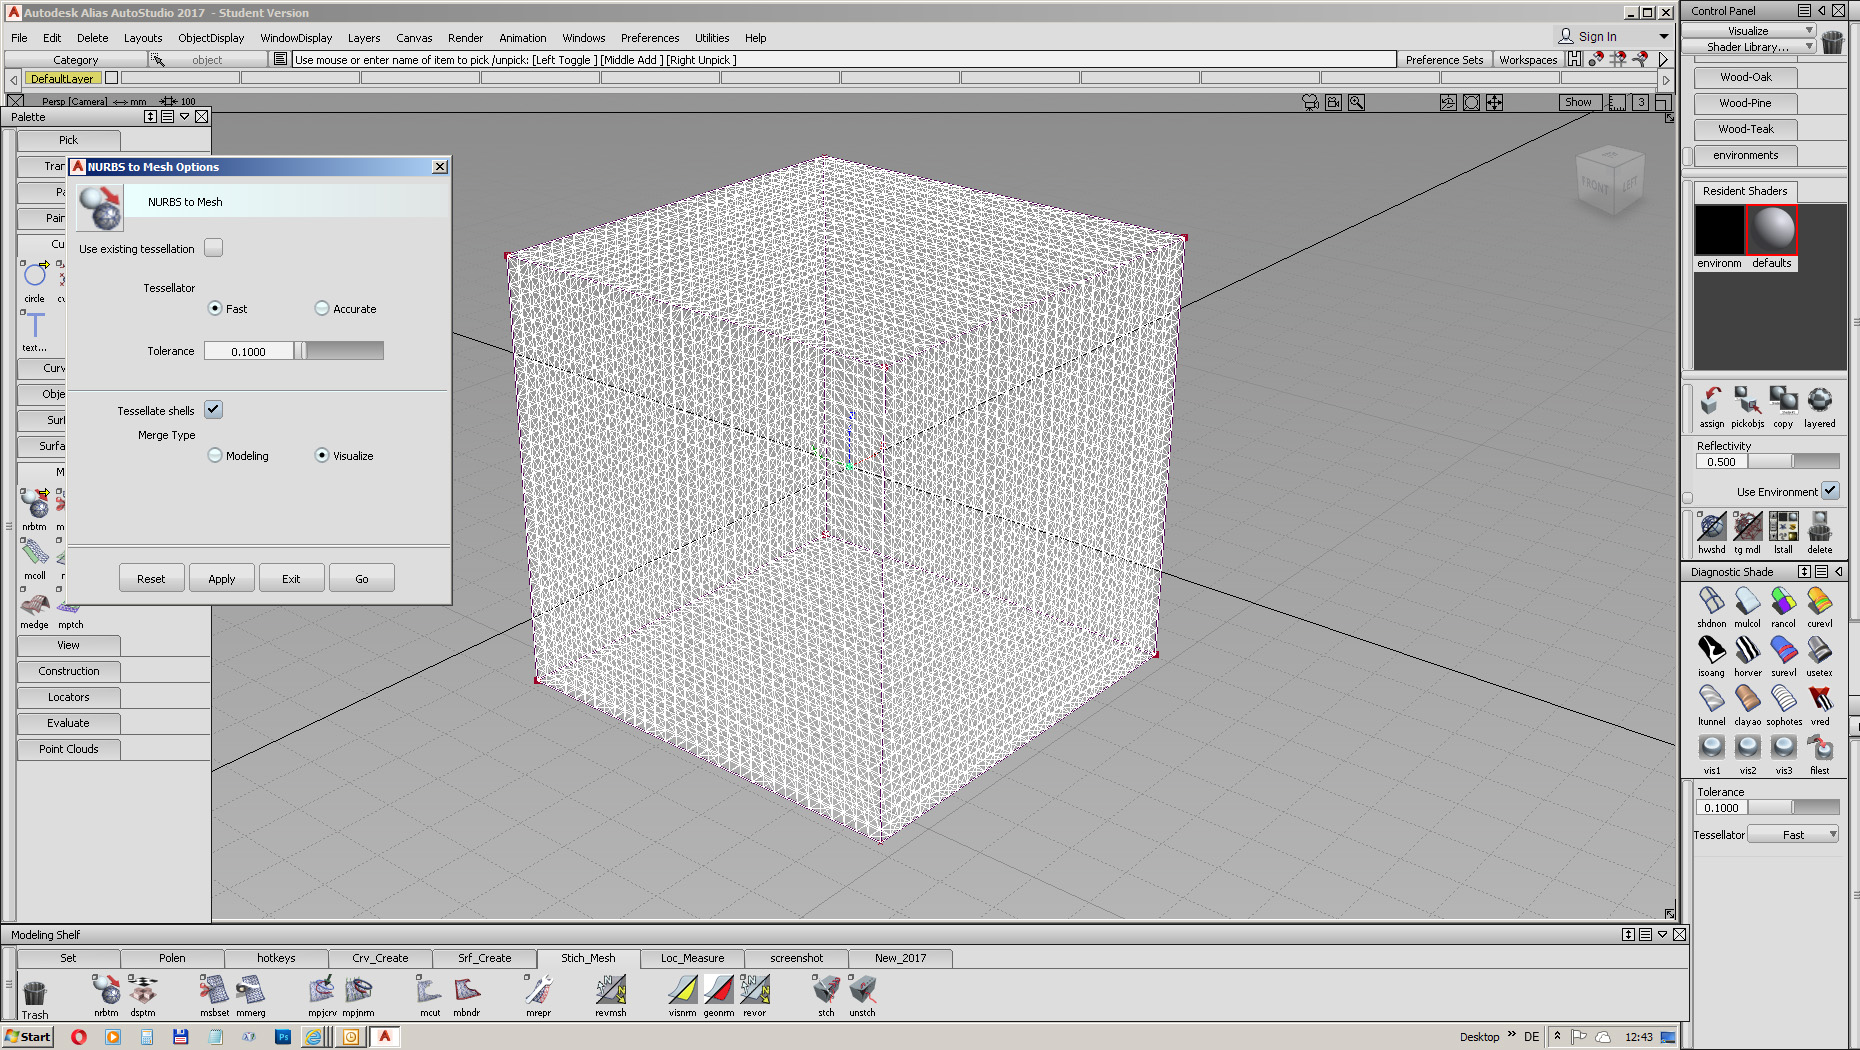 nurbs to mesh different in 2016 and 2017 - Autodesk